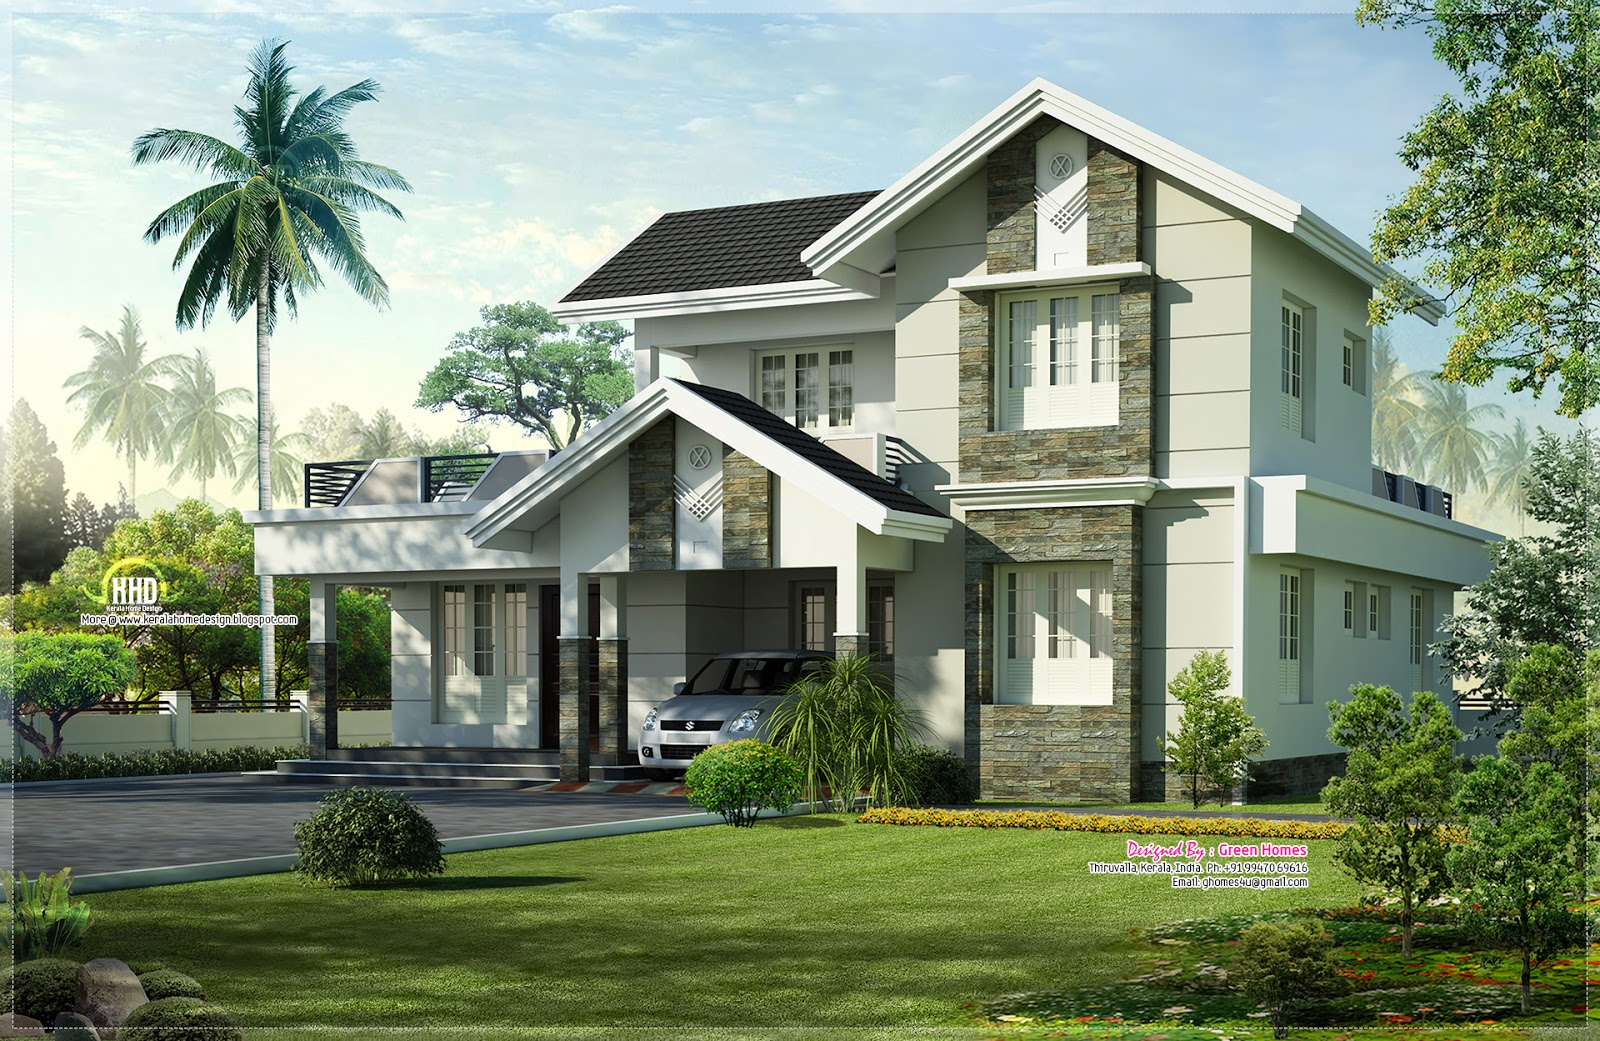 1975 nice home exterior design home kerala plans for Beautiful houses photos